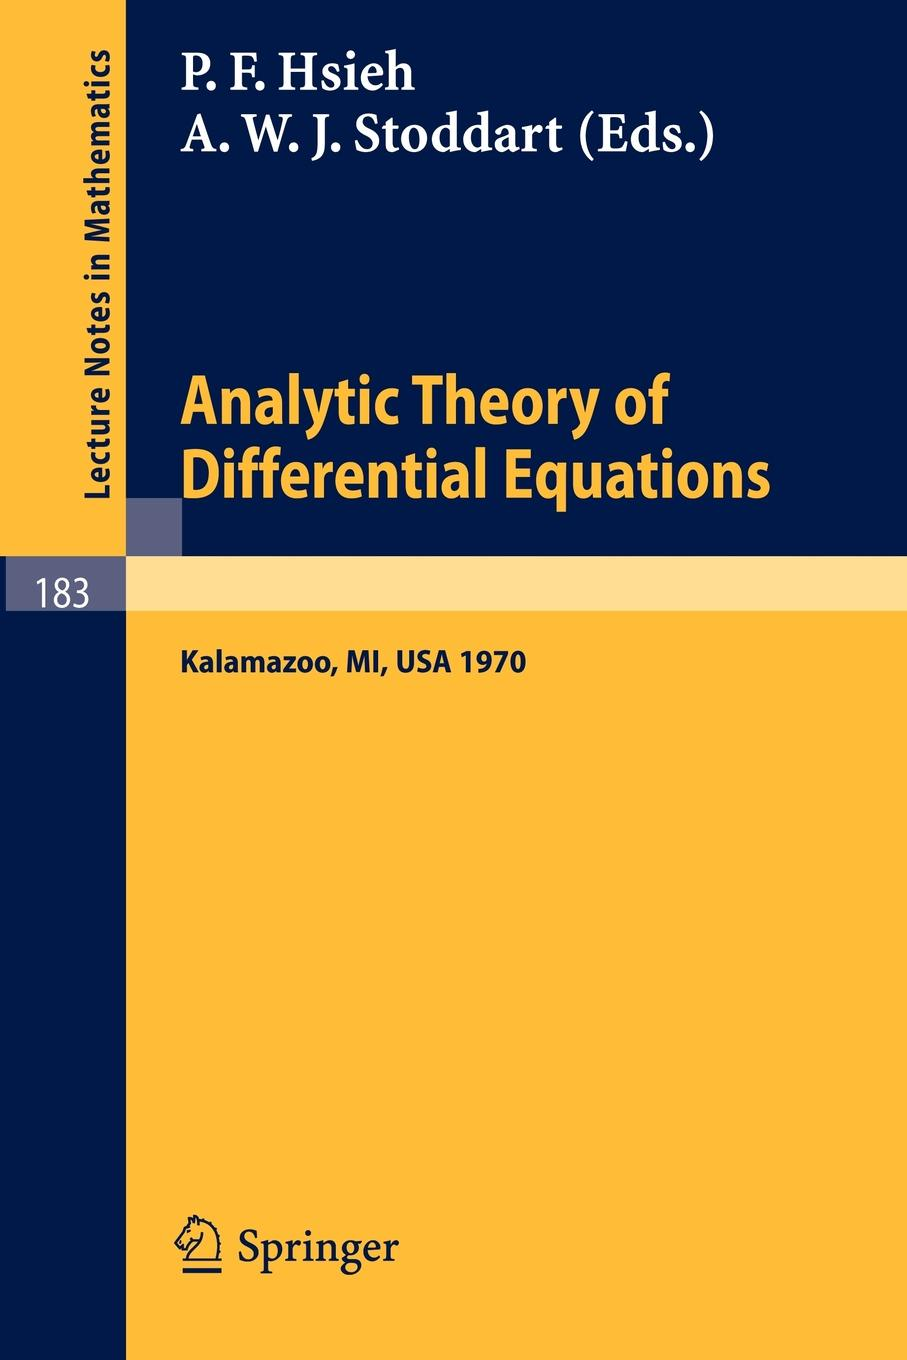 Analytic Theory of Differential Equations. The Proceedings of the Conference at Western Michigan University, Kalamazoo, from 30 April to 2 May 1970 qualitative theory of differential equations